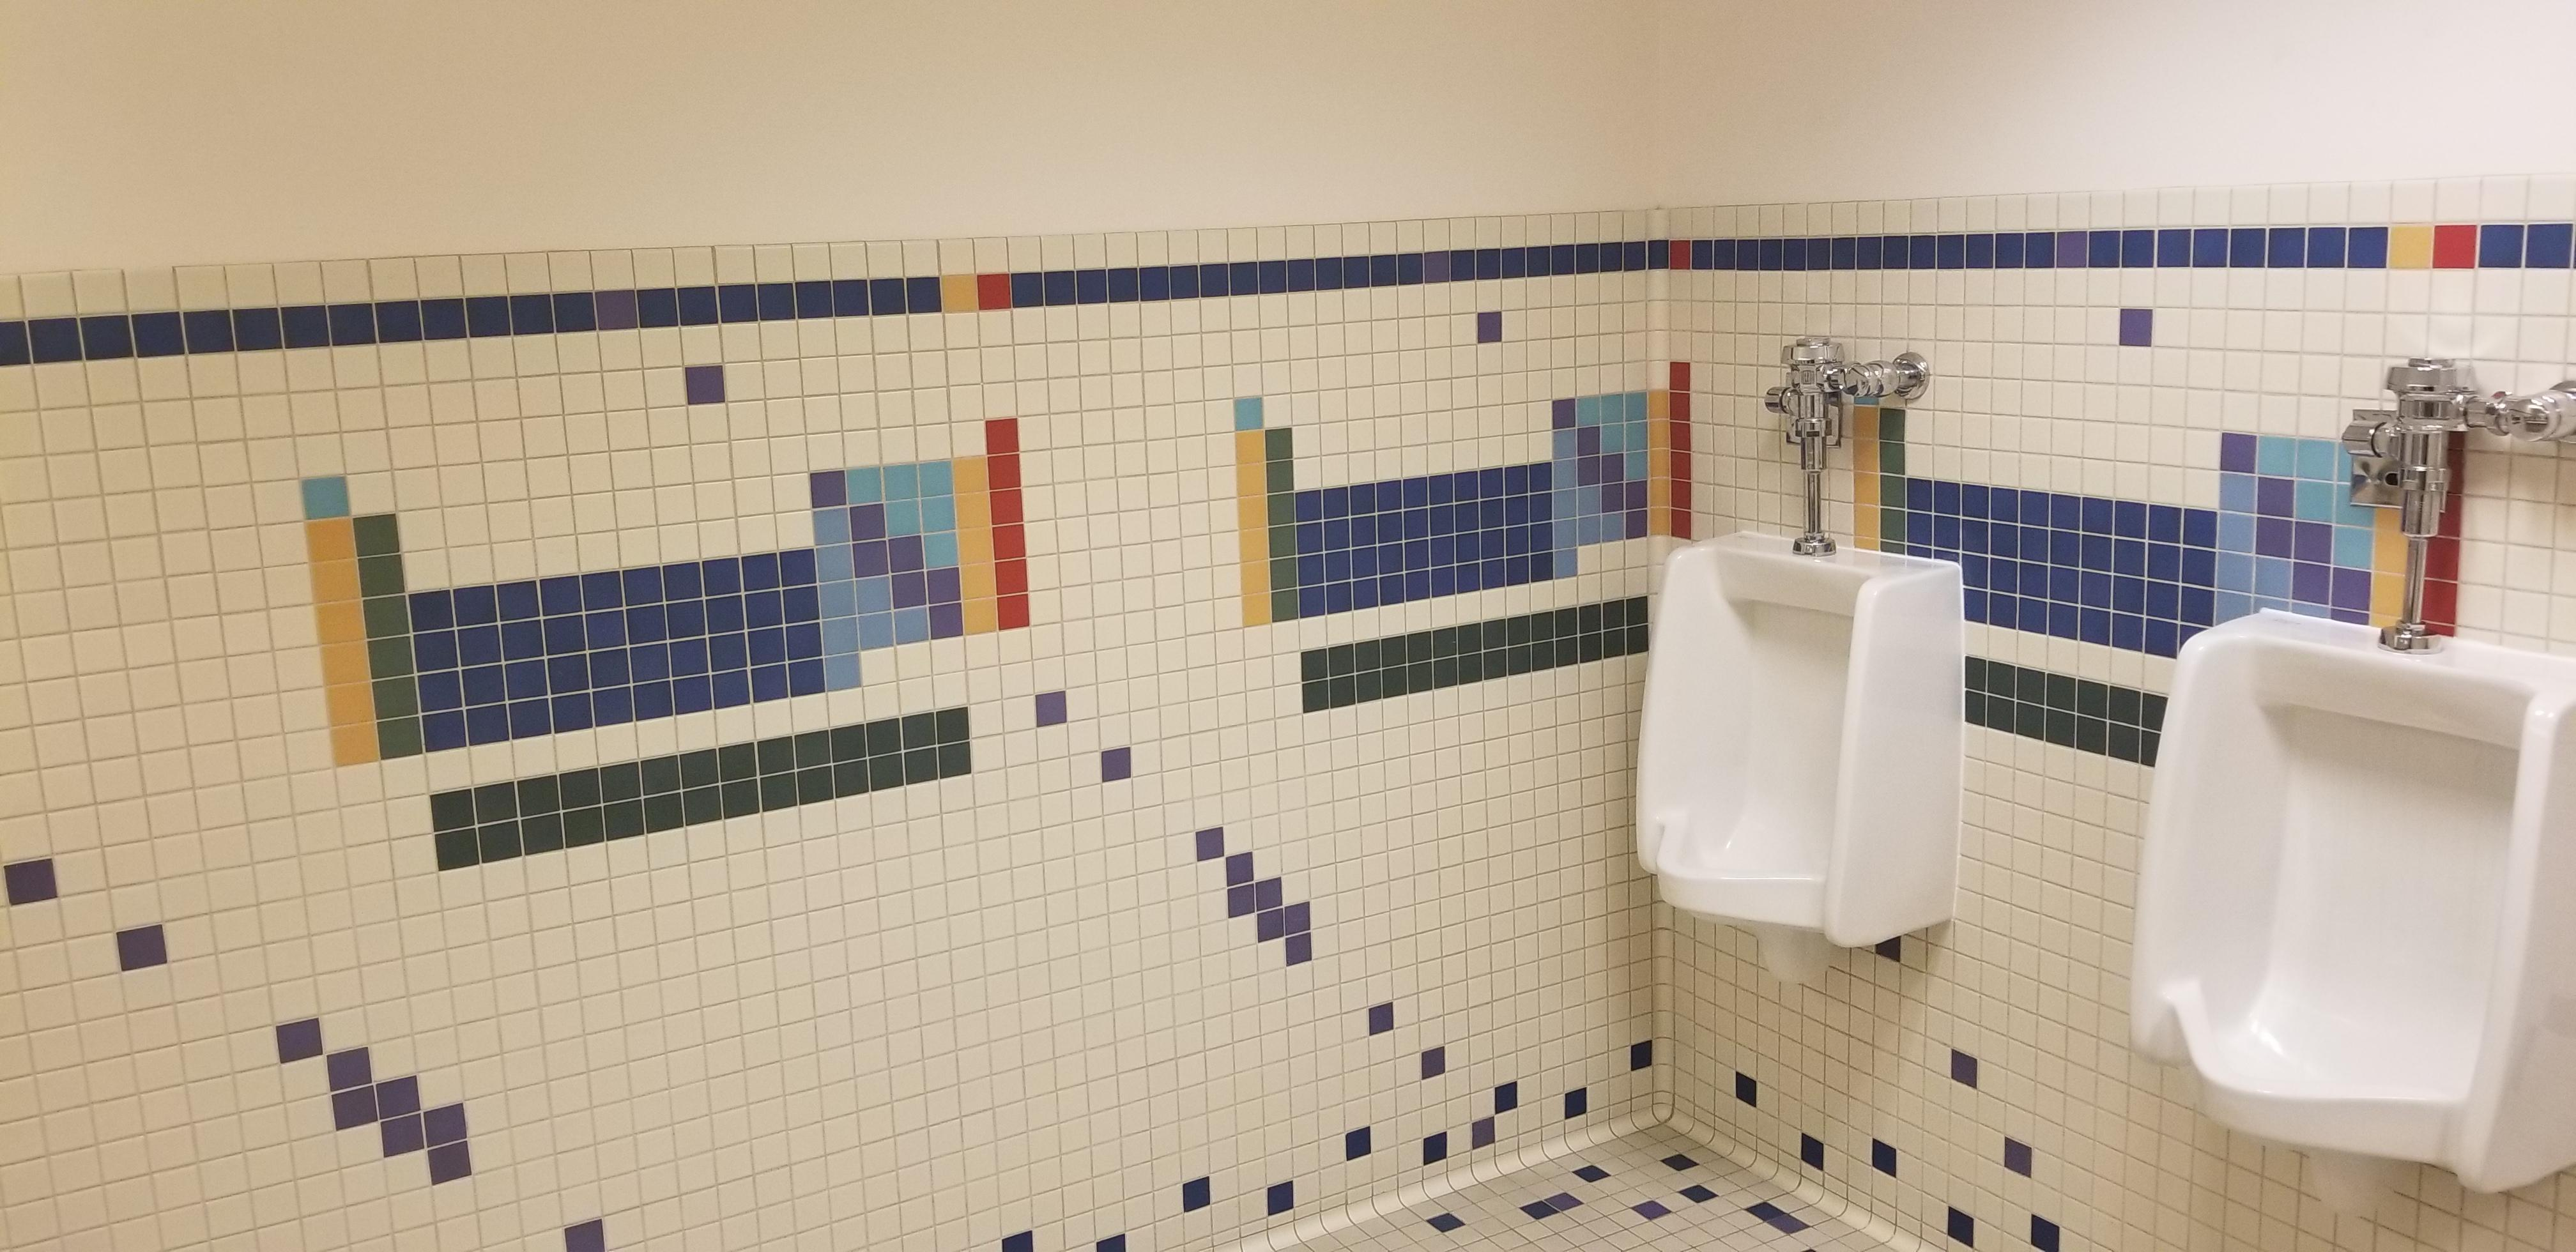 The bathroom in our science building has the periodic table in tiles